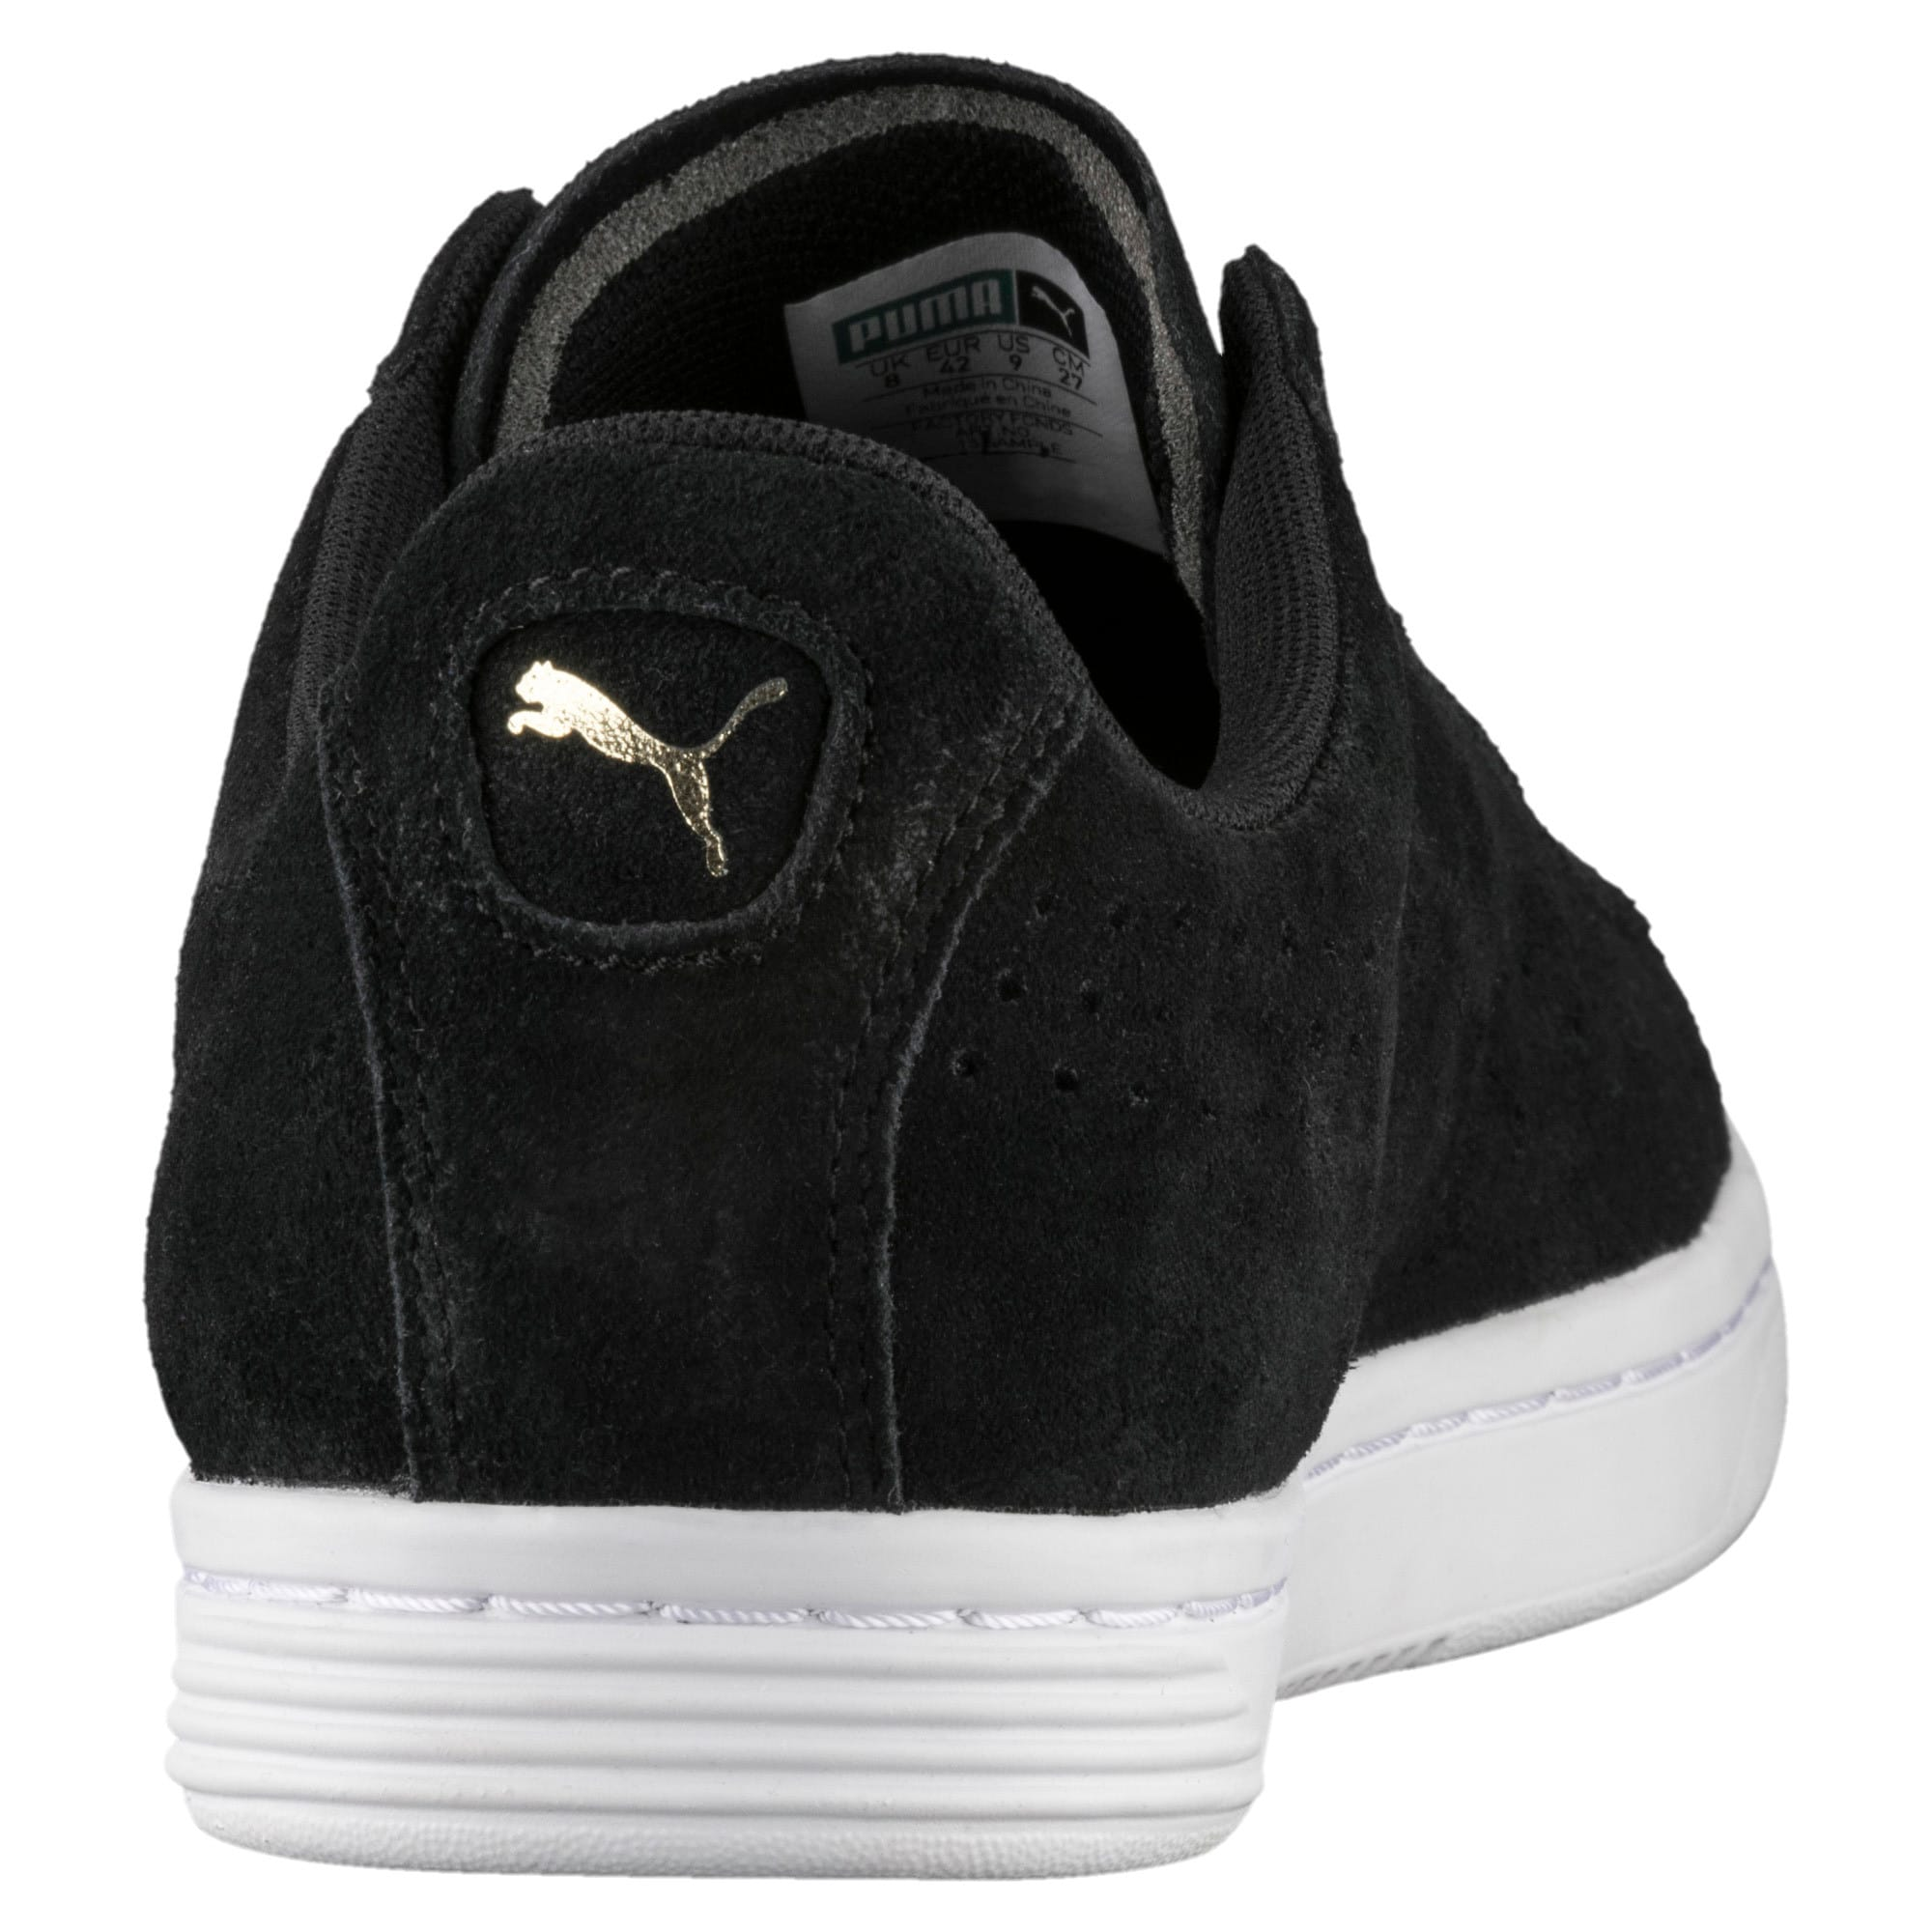 quality design 8a570 6056a Court Star Suede Trainers